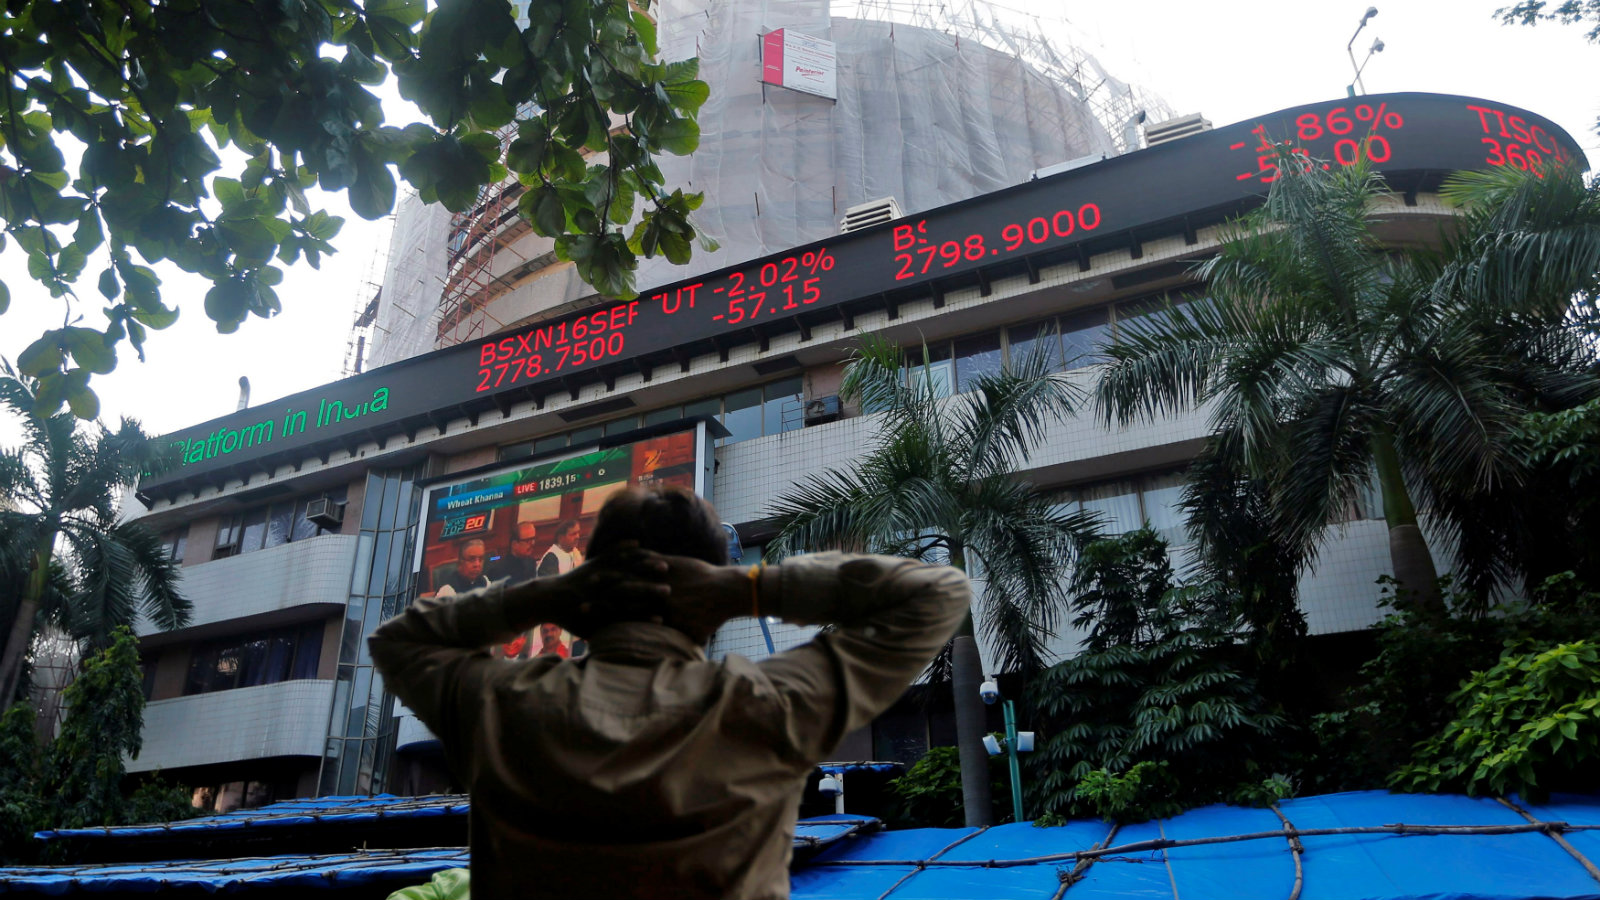 IMF, World Bank, Moody's, S&P, Fitch cut India's growth forecasts